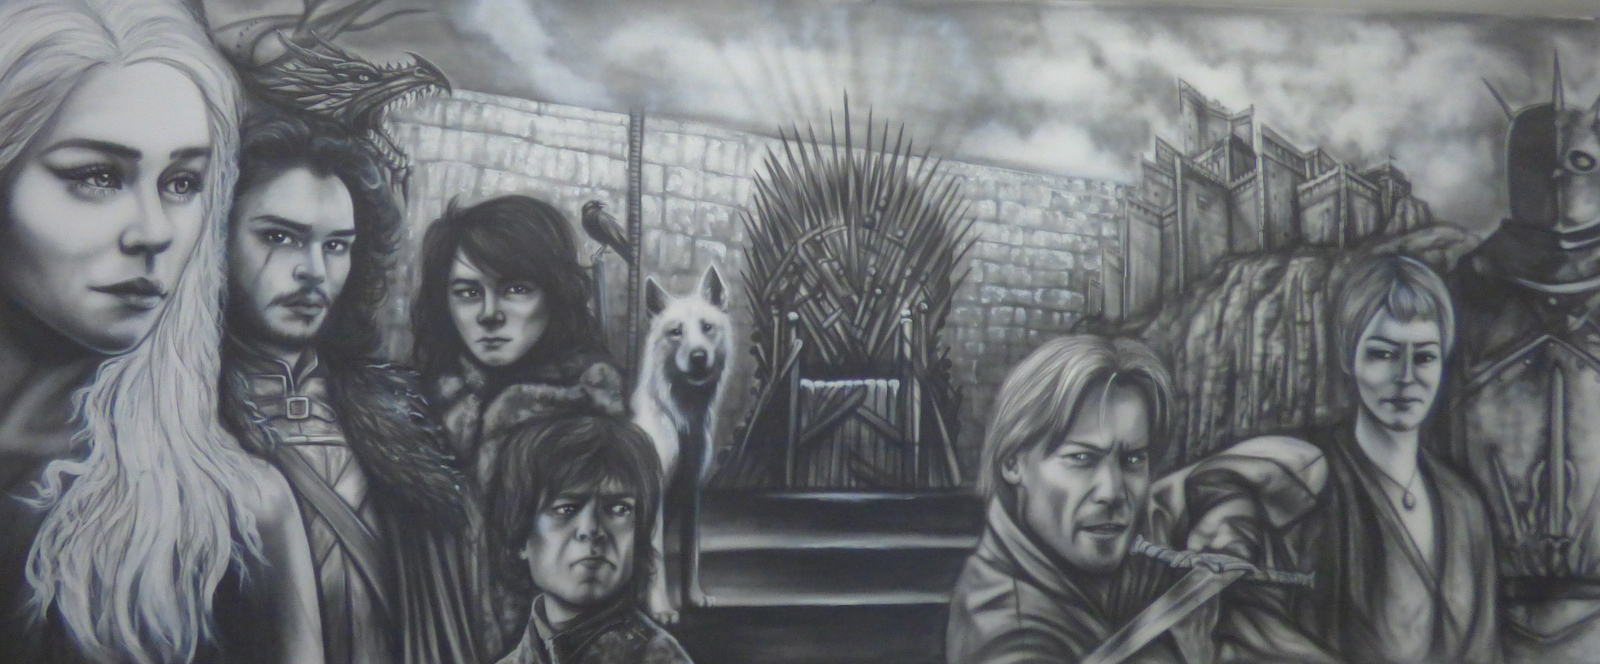 fresque Game of thrones